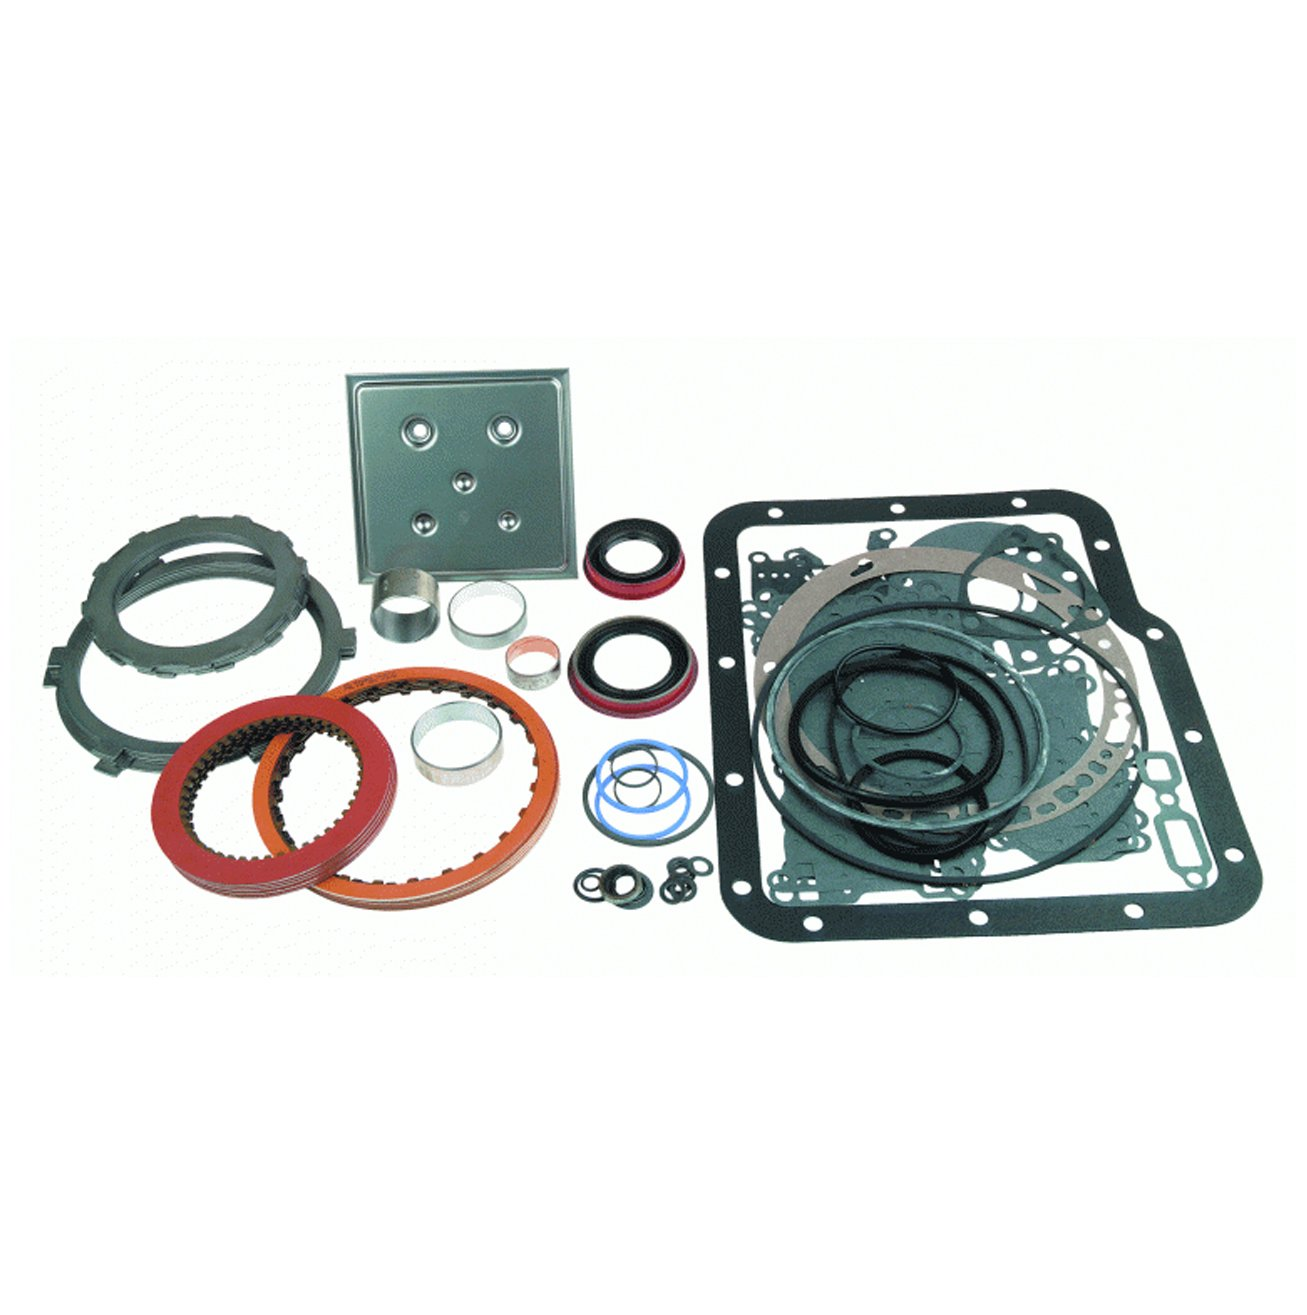 Transmission Specialties 2547 Powerglide U-Build It Overhaul Kit by Transmission Specialties